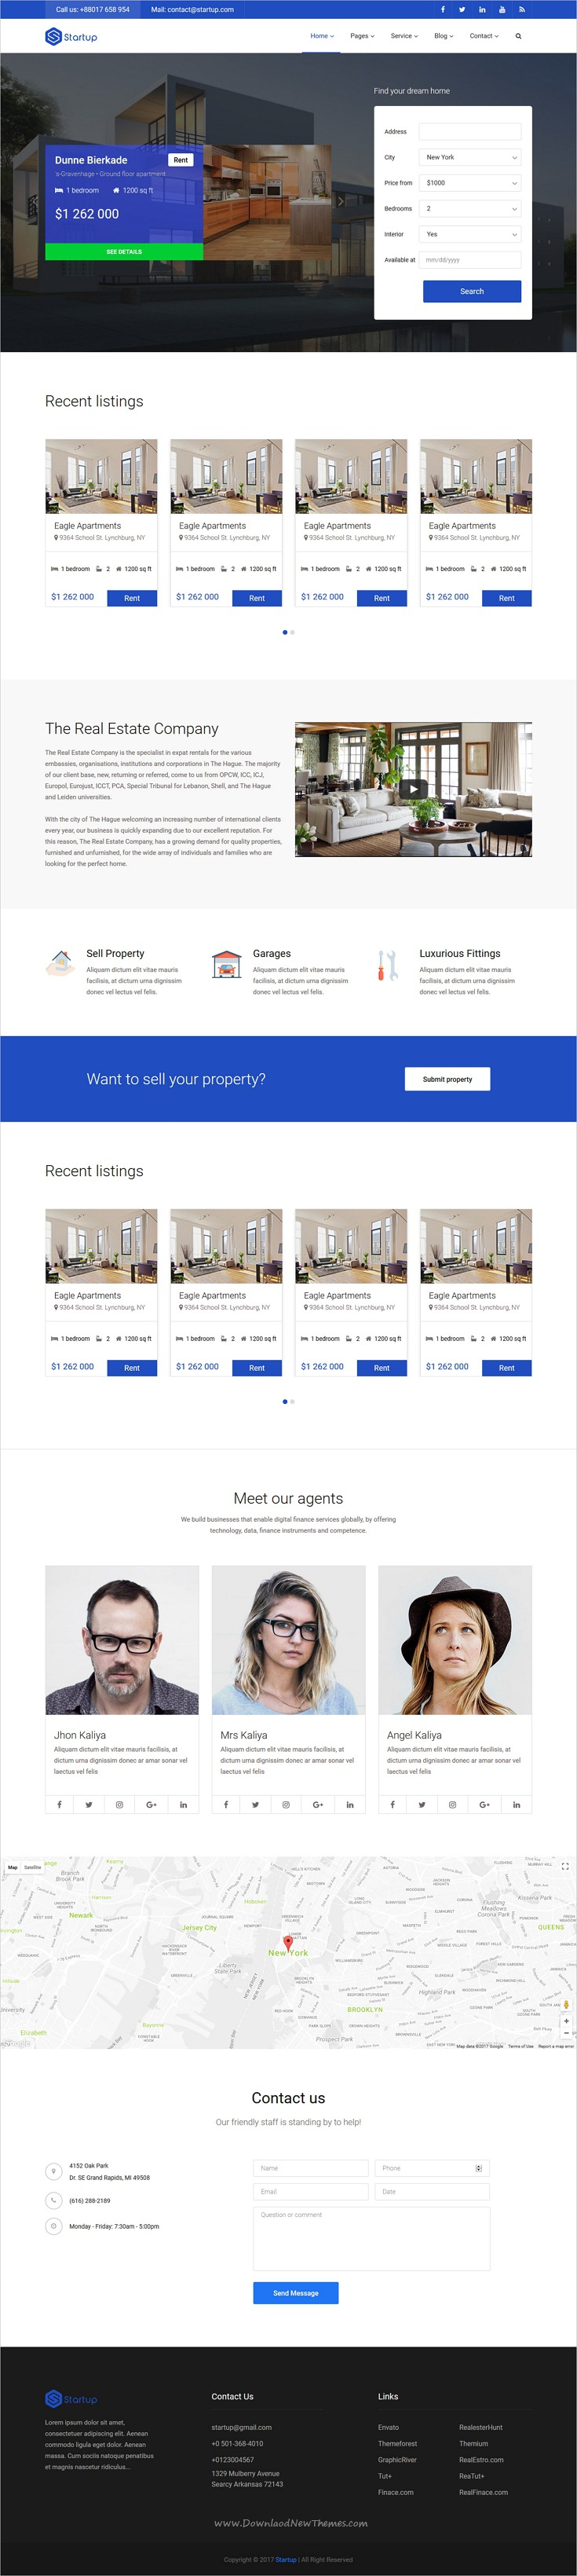 Startup - Multipurpose Startup Template   Startups and Business website